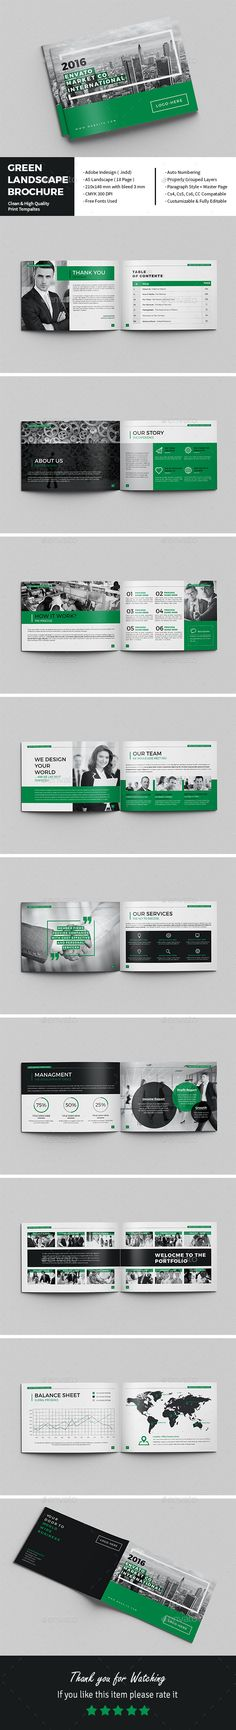 Green Landscape Brochure Template InDesign INDD. Download here: https://graphicriver.net/item/green-landscape-brochure/17205438?ref=ksioks